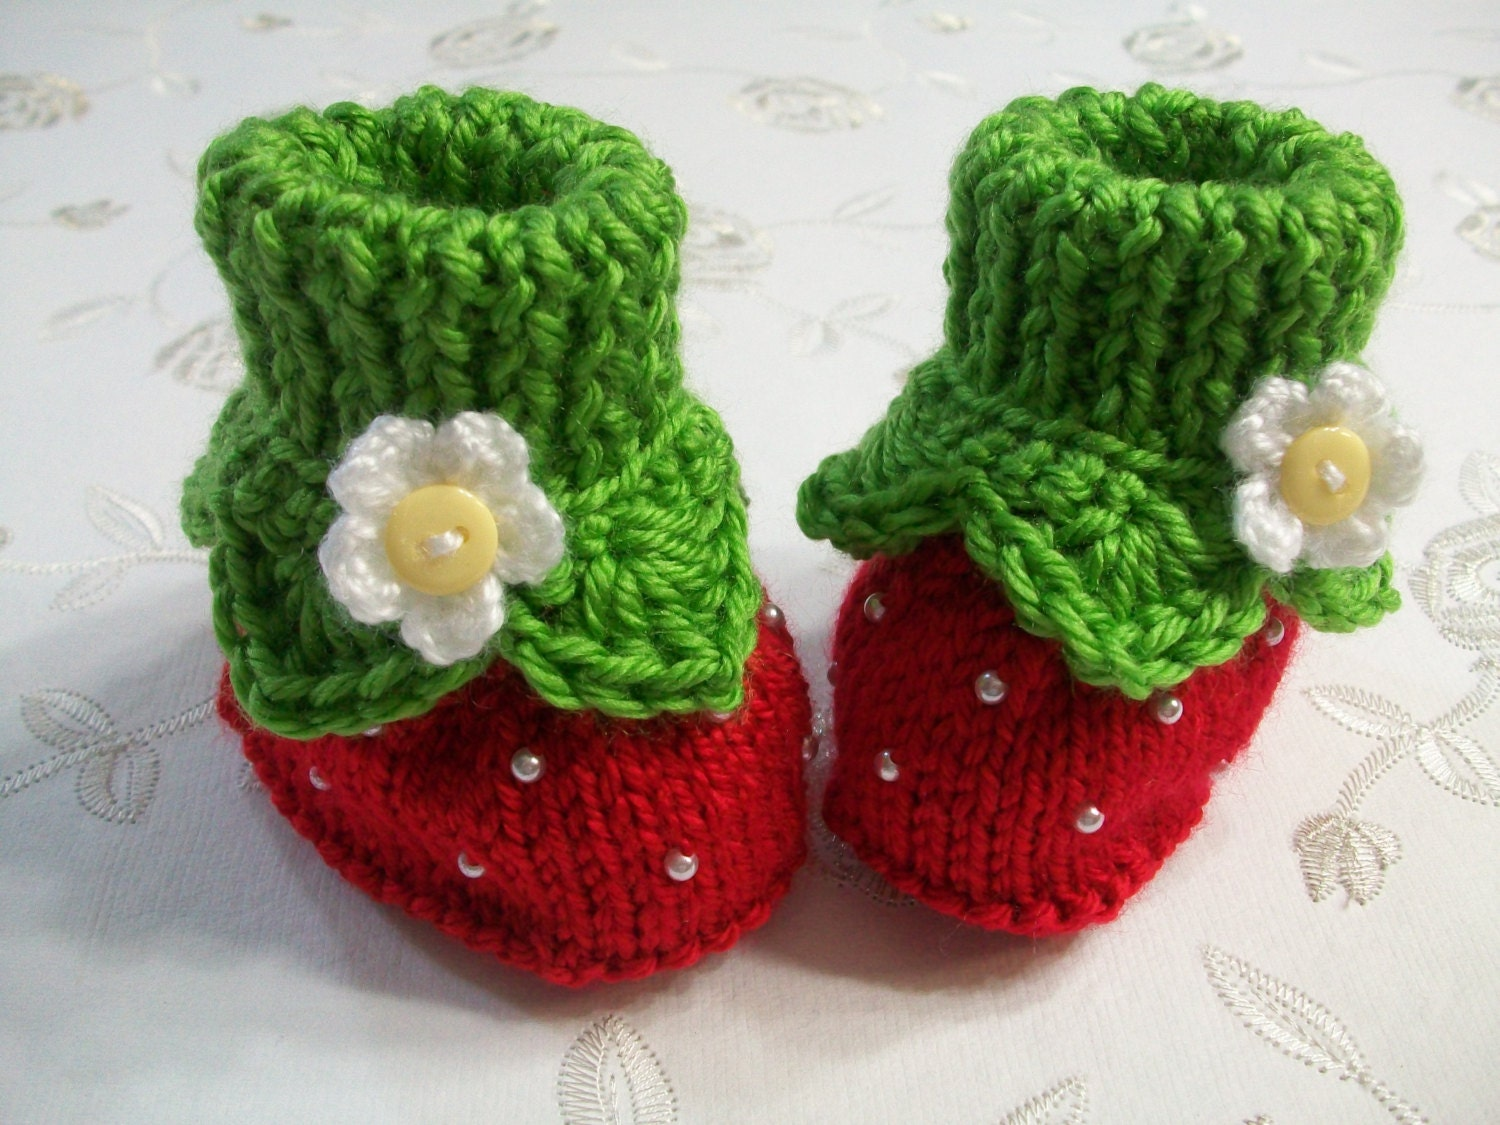 Intarsia Knitting Patterns For Children : Strawberry Baby Booties Newborn Straberry Knitted Booties